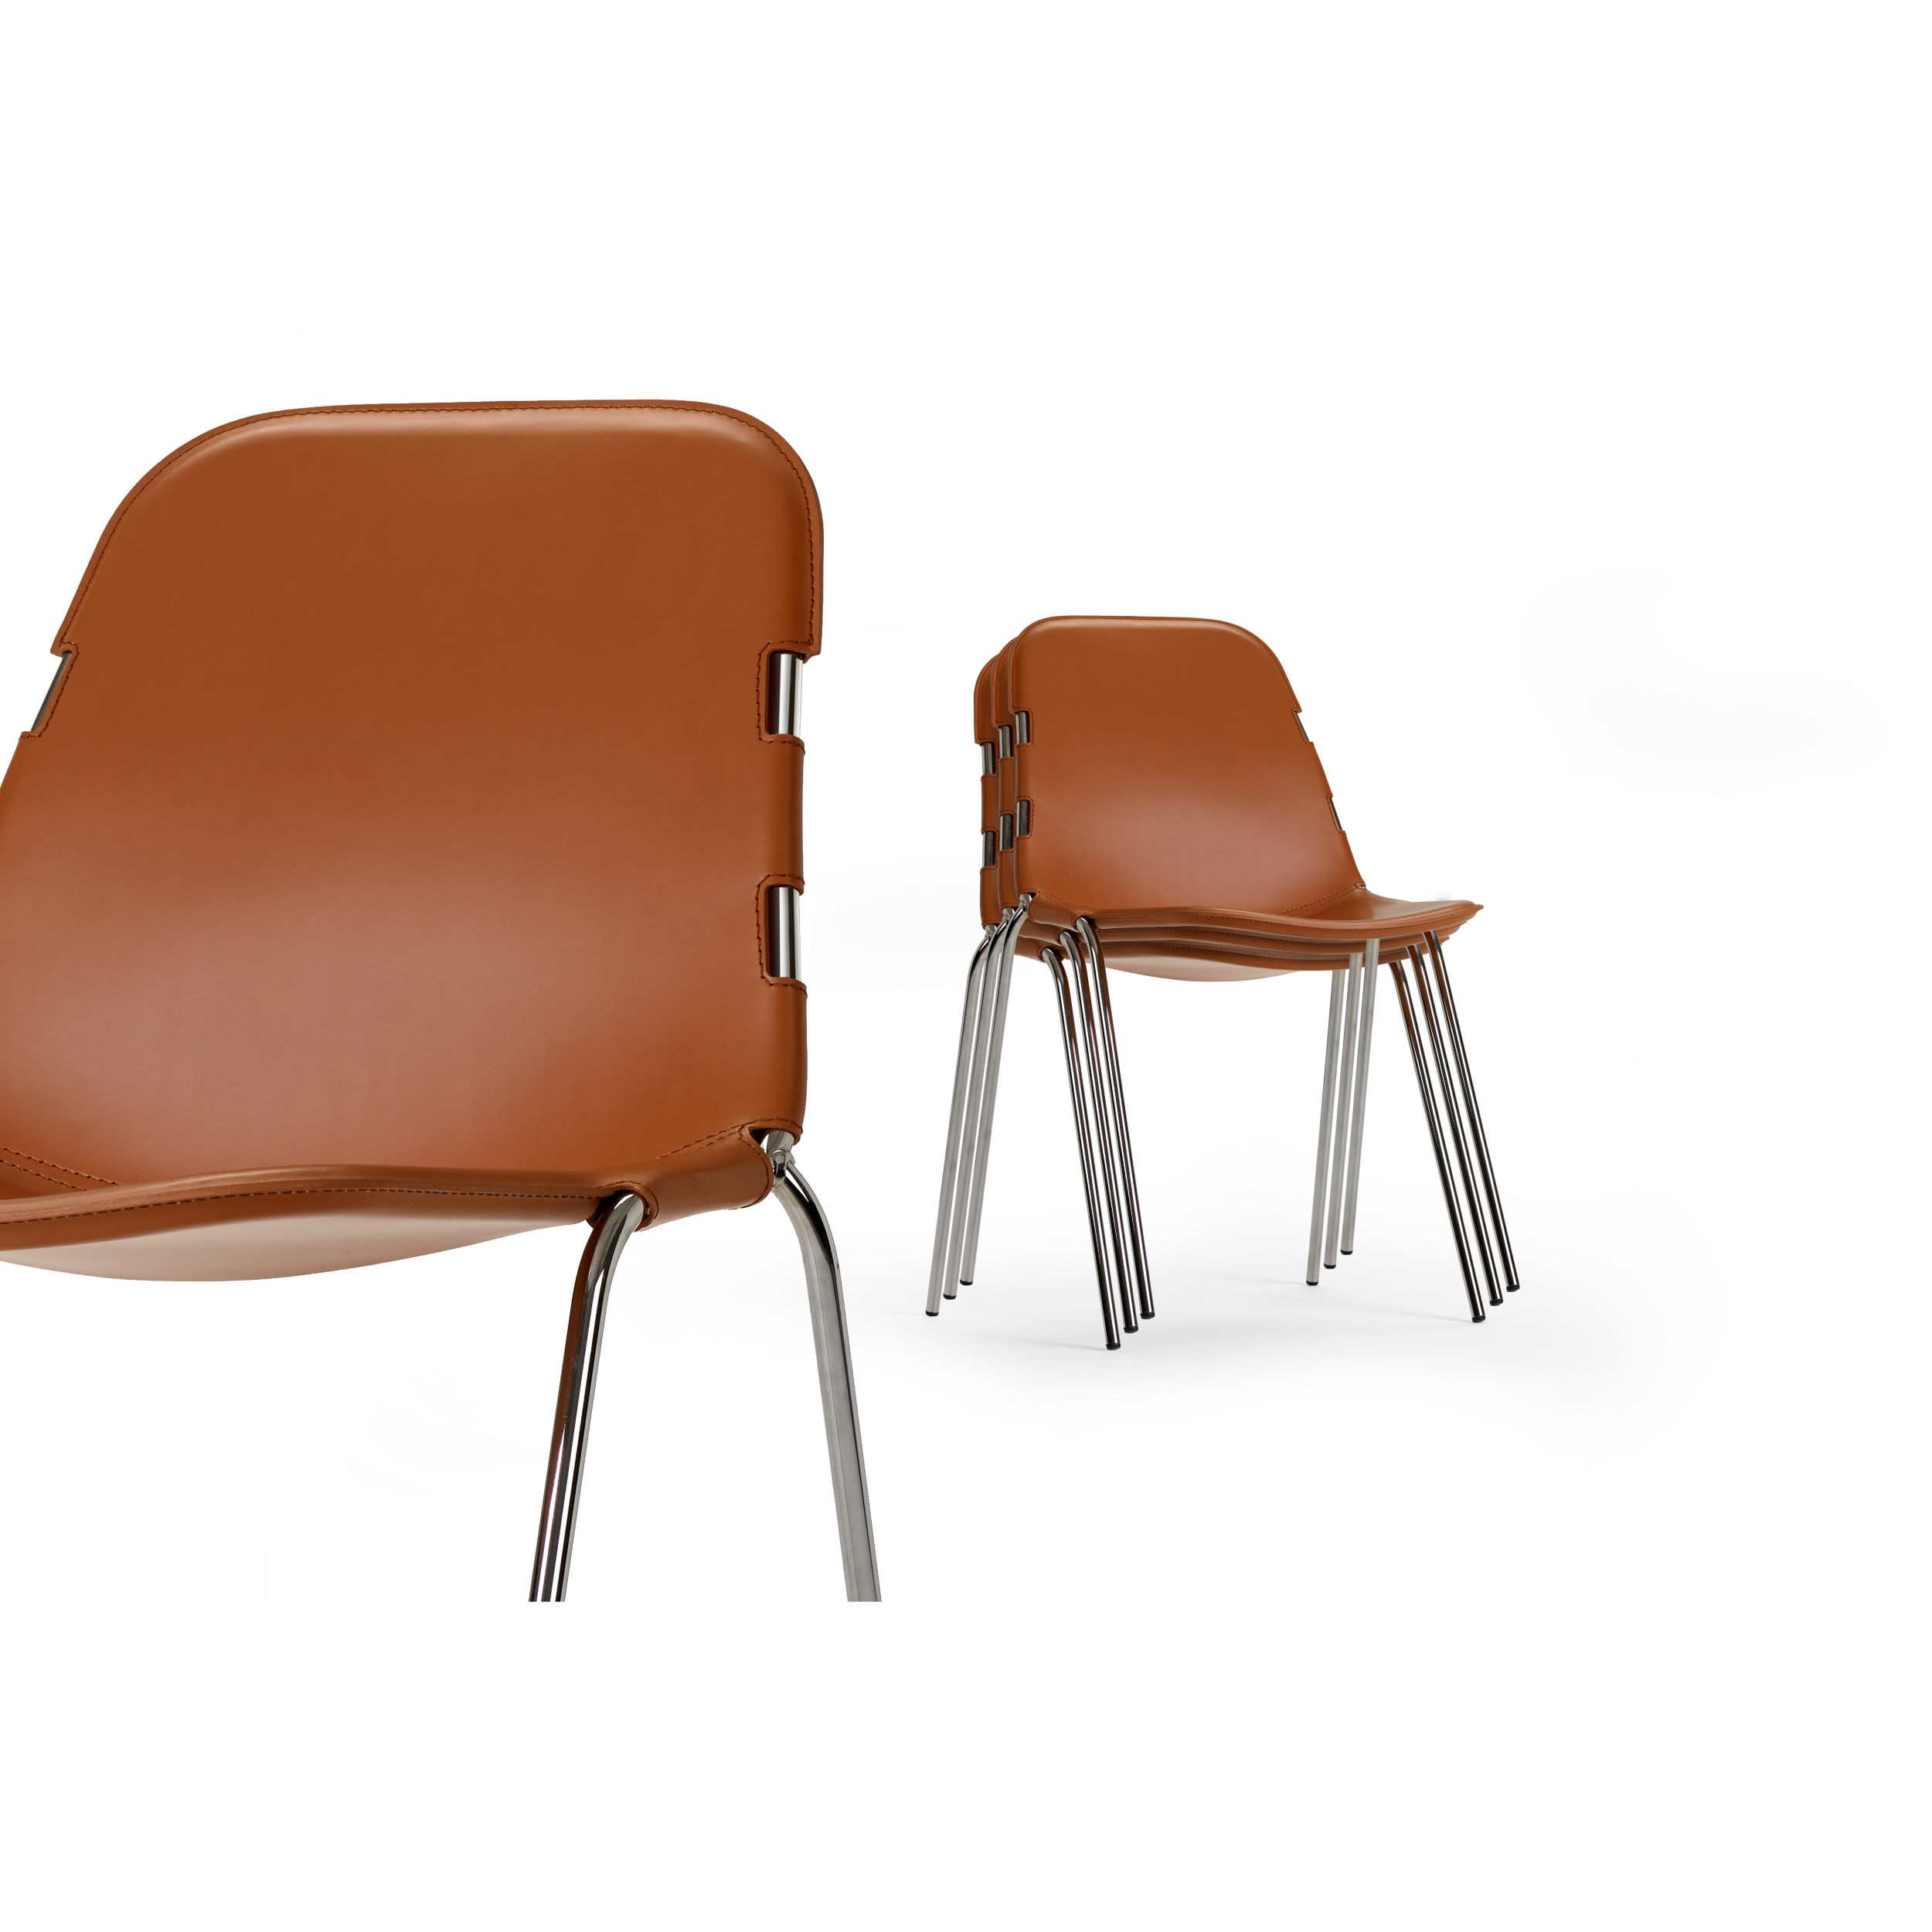 the bike chair wheelchair sign of quinn cognac or black leather monica forster offecct this iframe contains logic required to handle ajax powered gravity forms